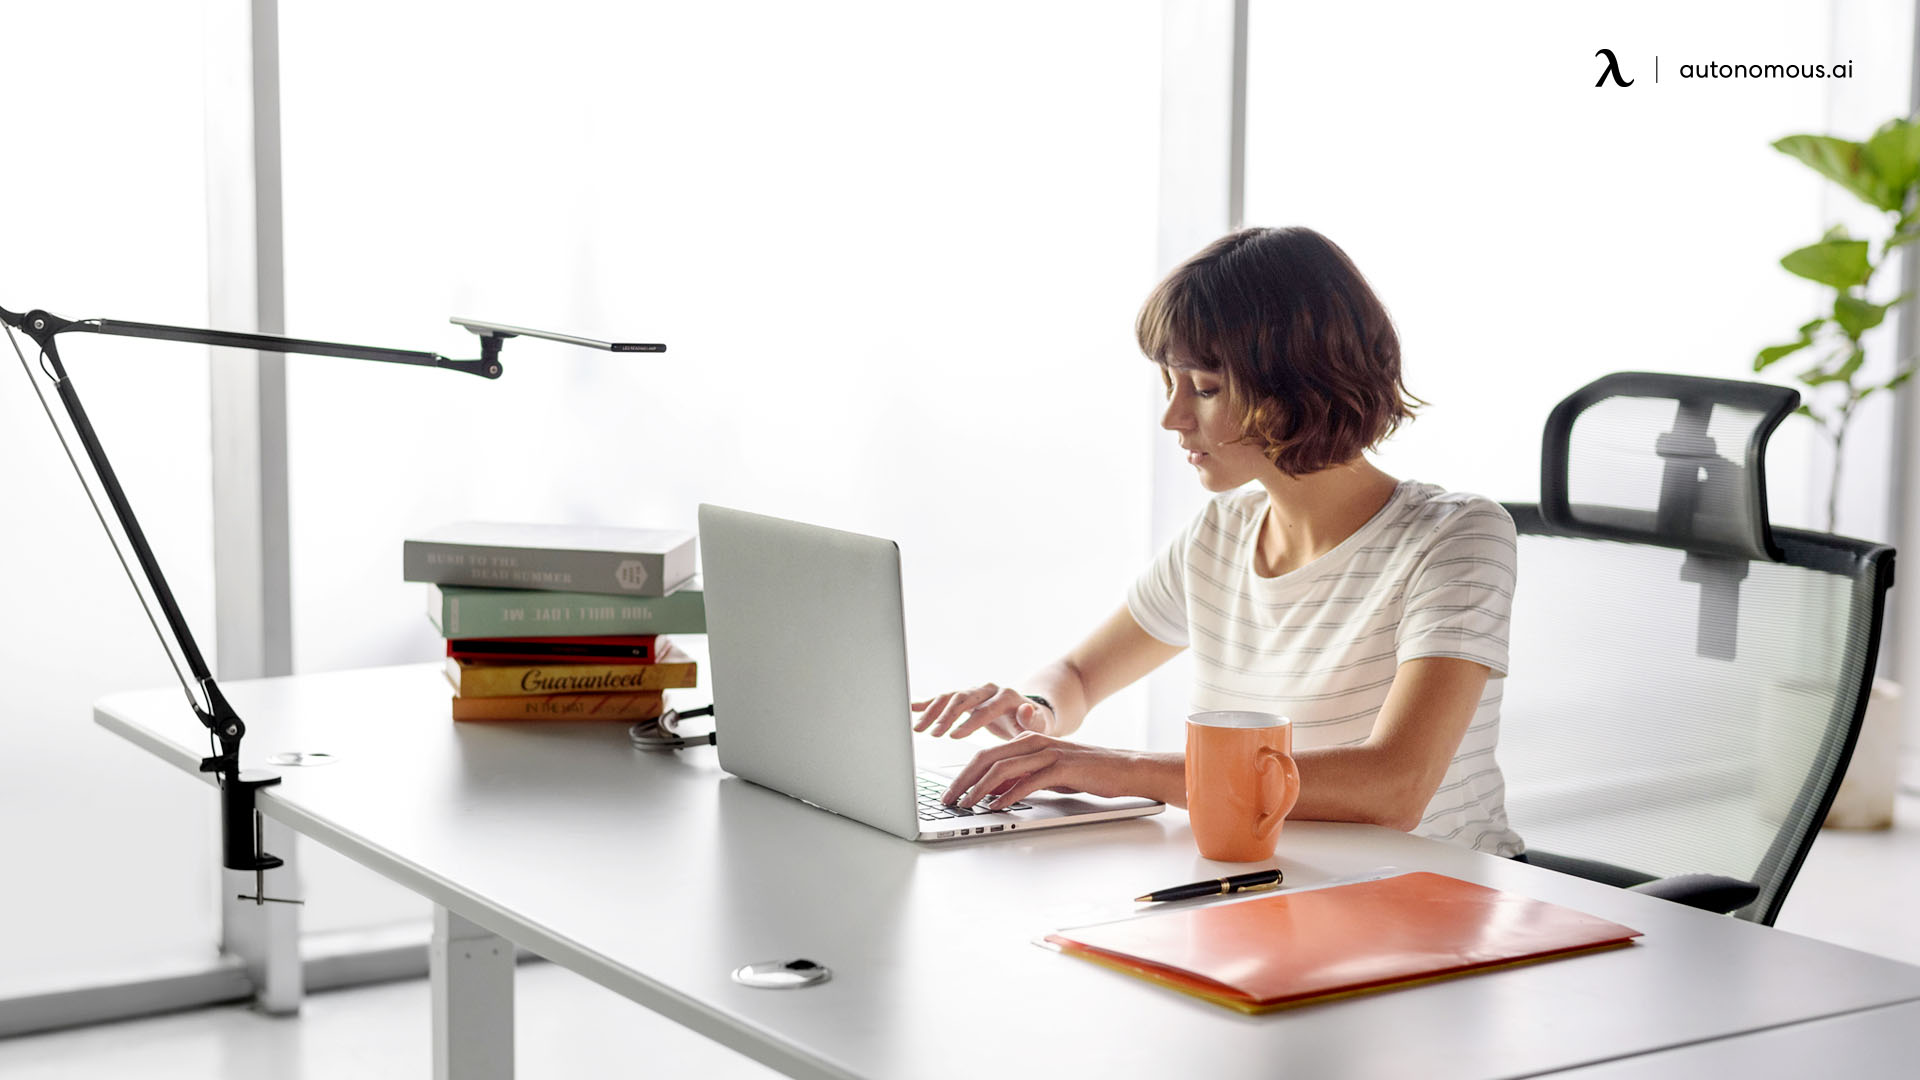 How Do You Reduce the Health Risks of Sitting at a Desk